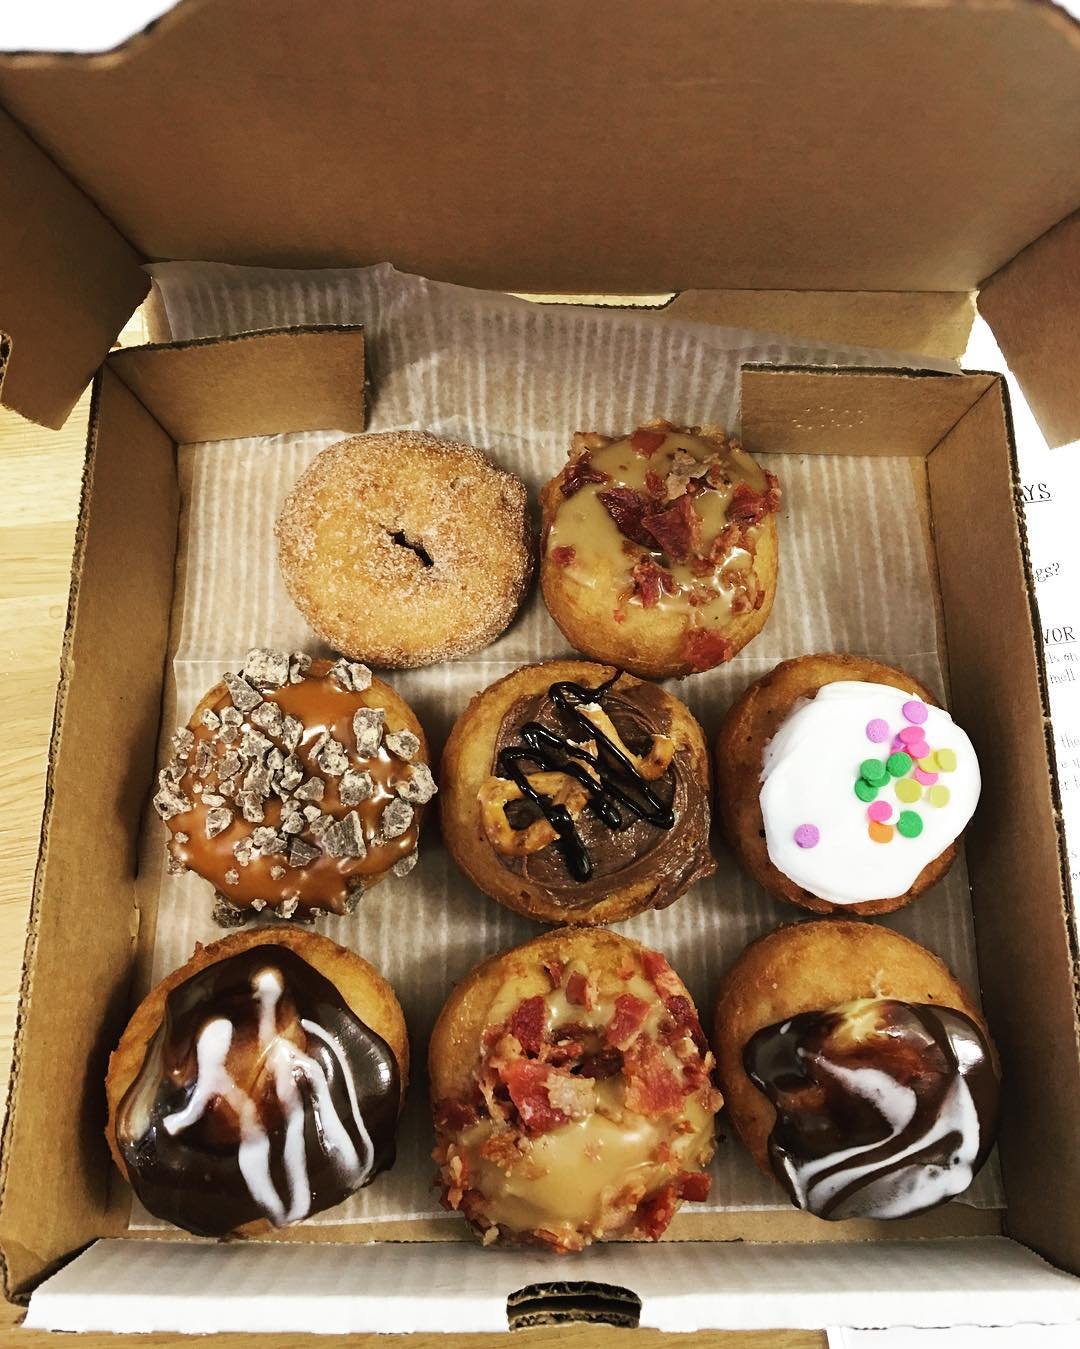 davinci s donuts visual menu reviews by food bloggers instagrammers